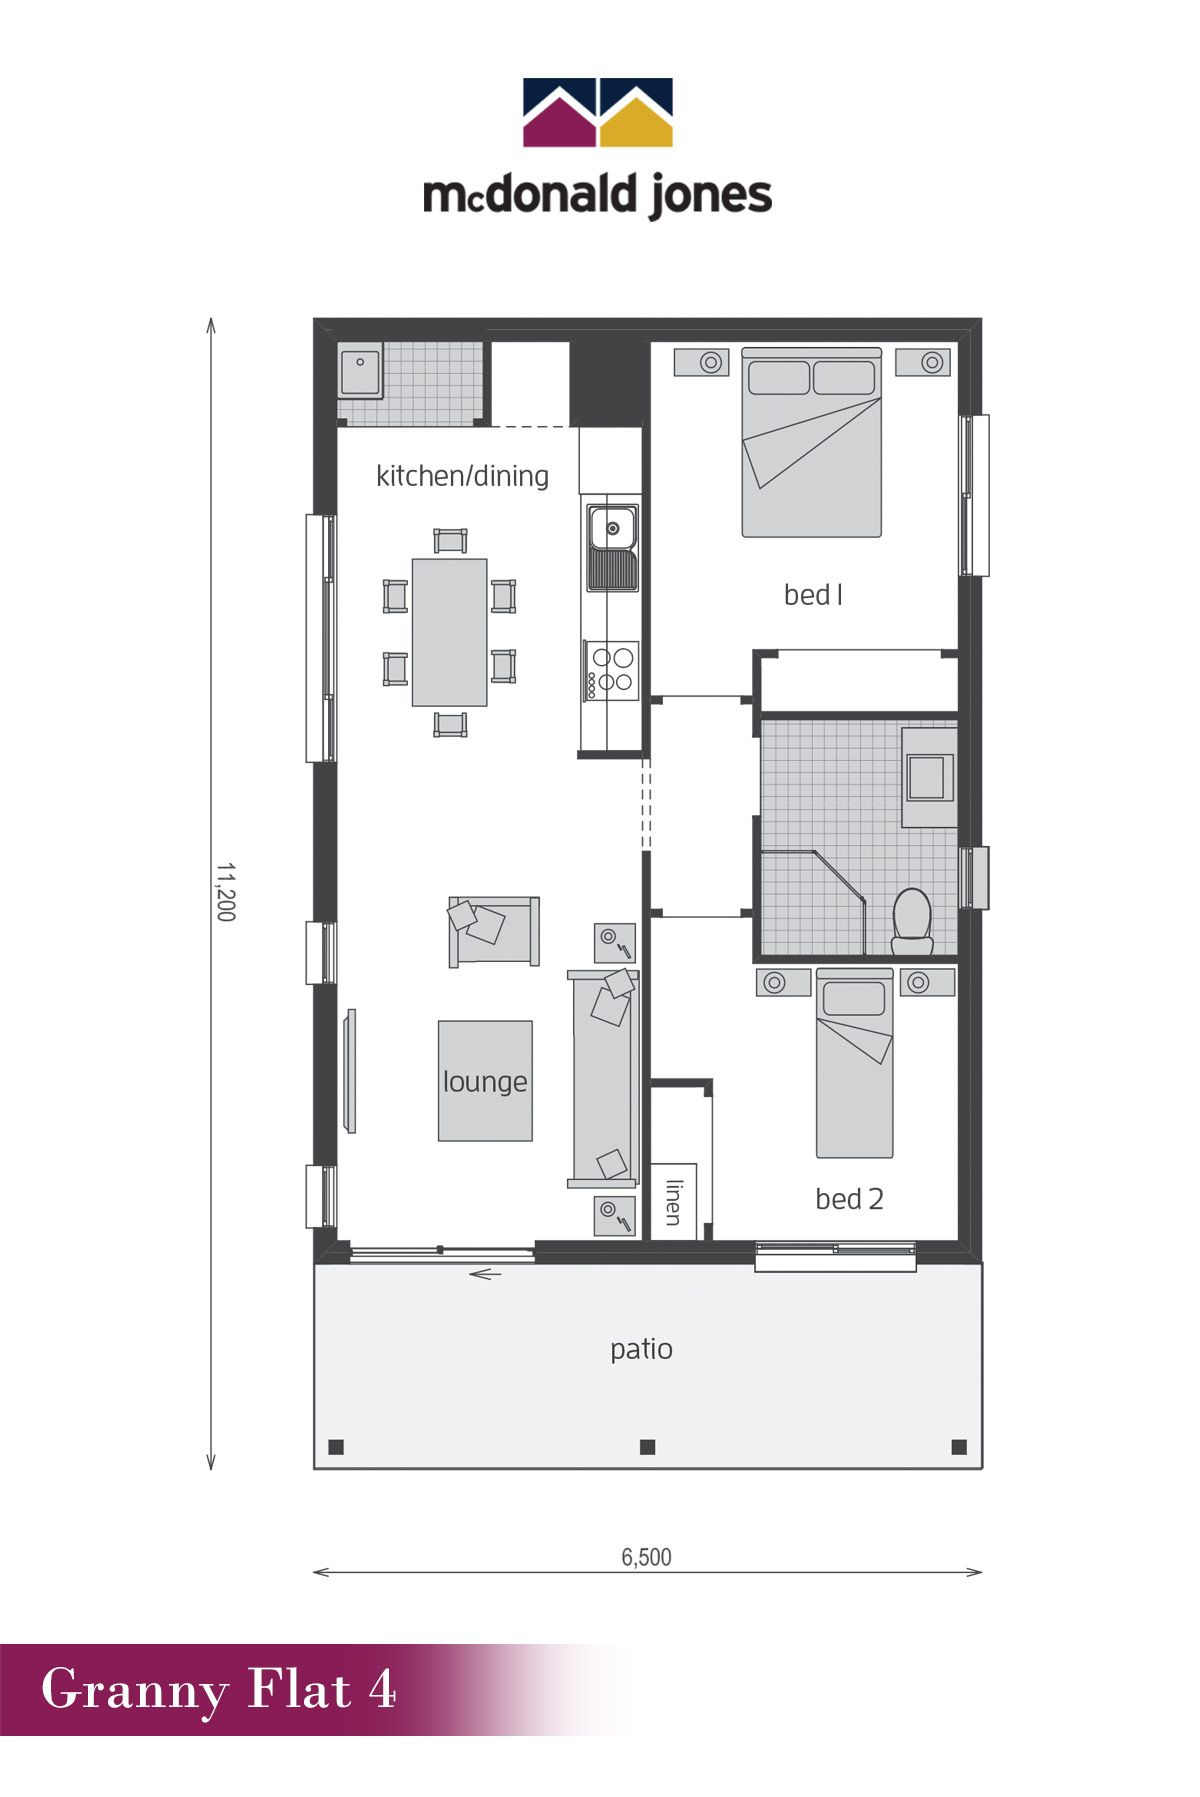 Granny Flat 4 Floor Plan by McDonald Jones Doubling up